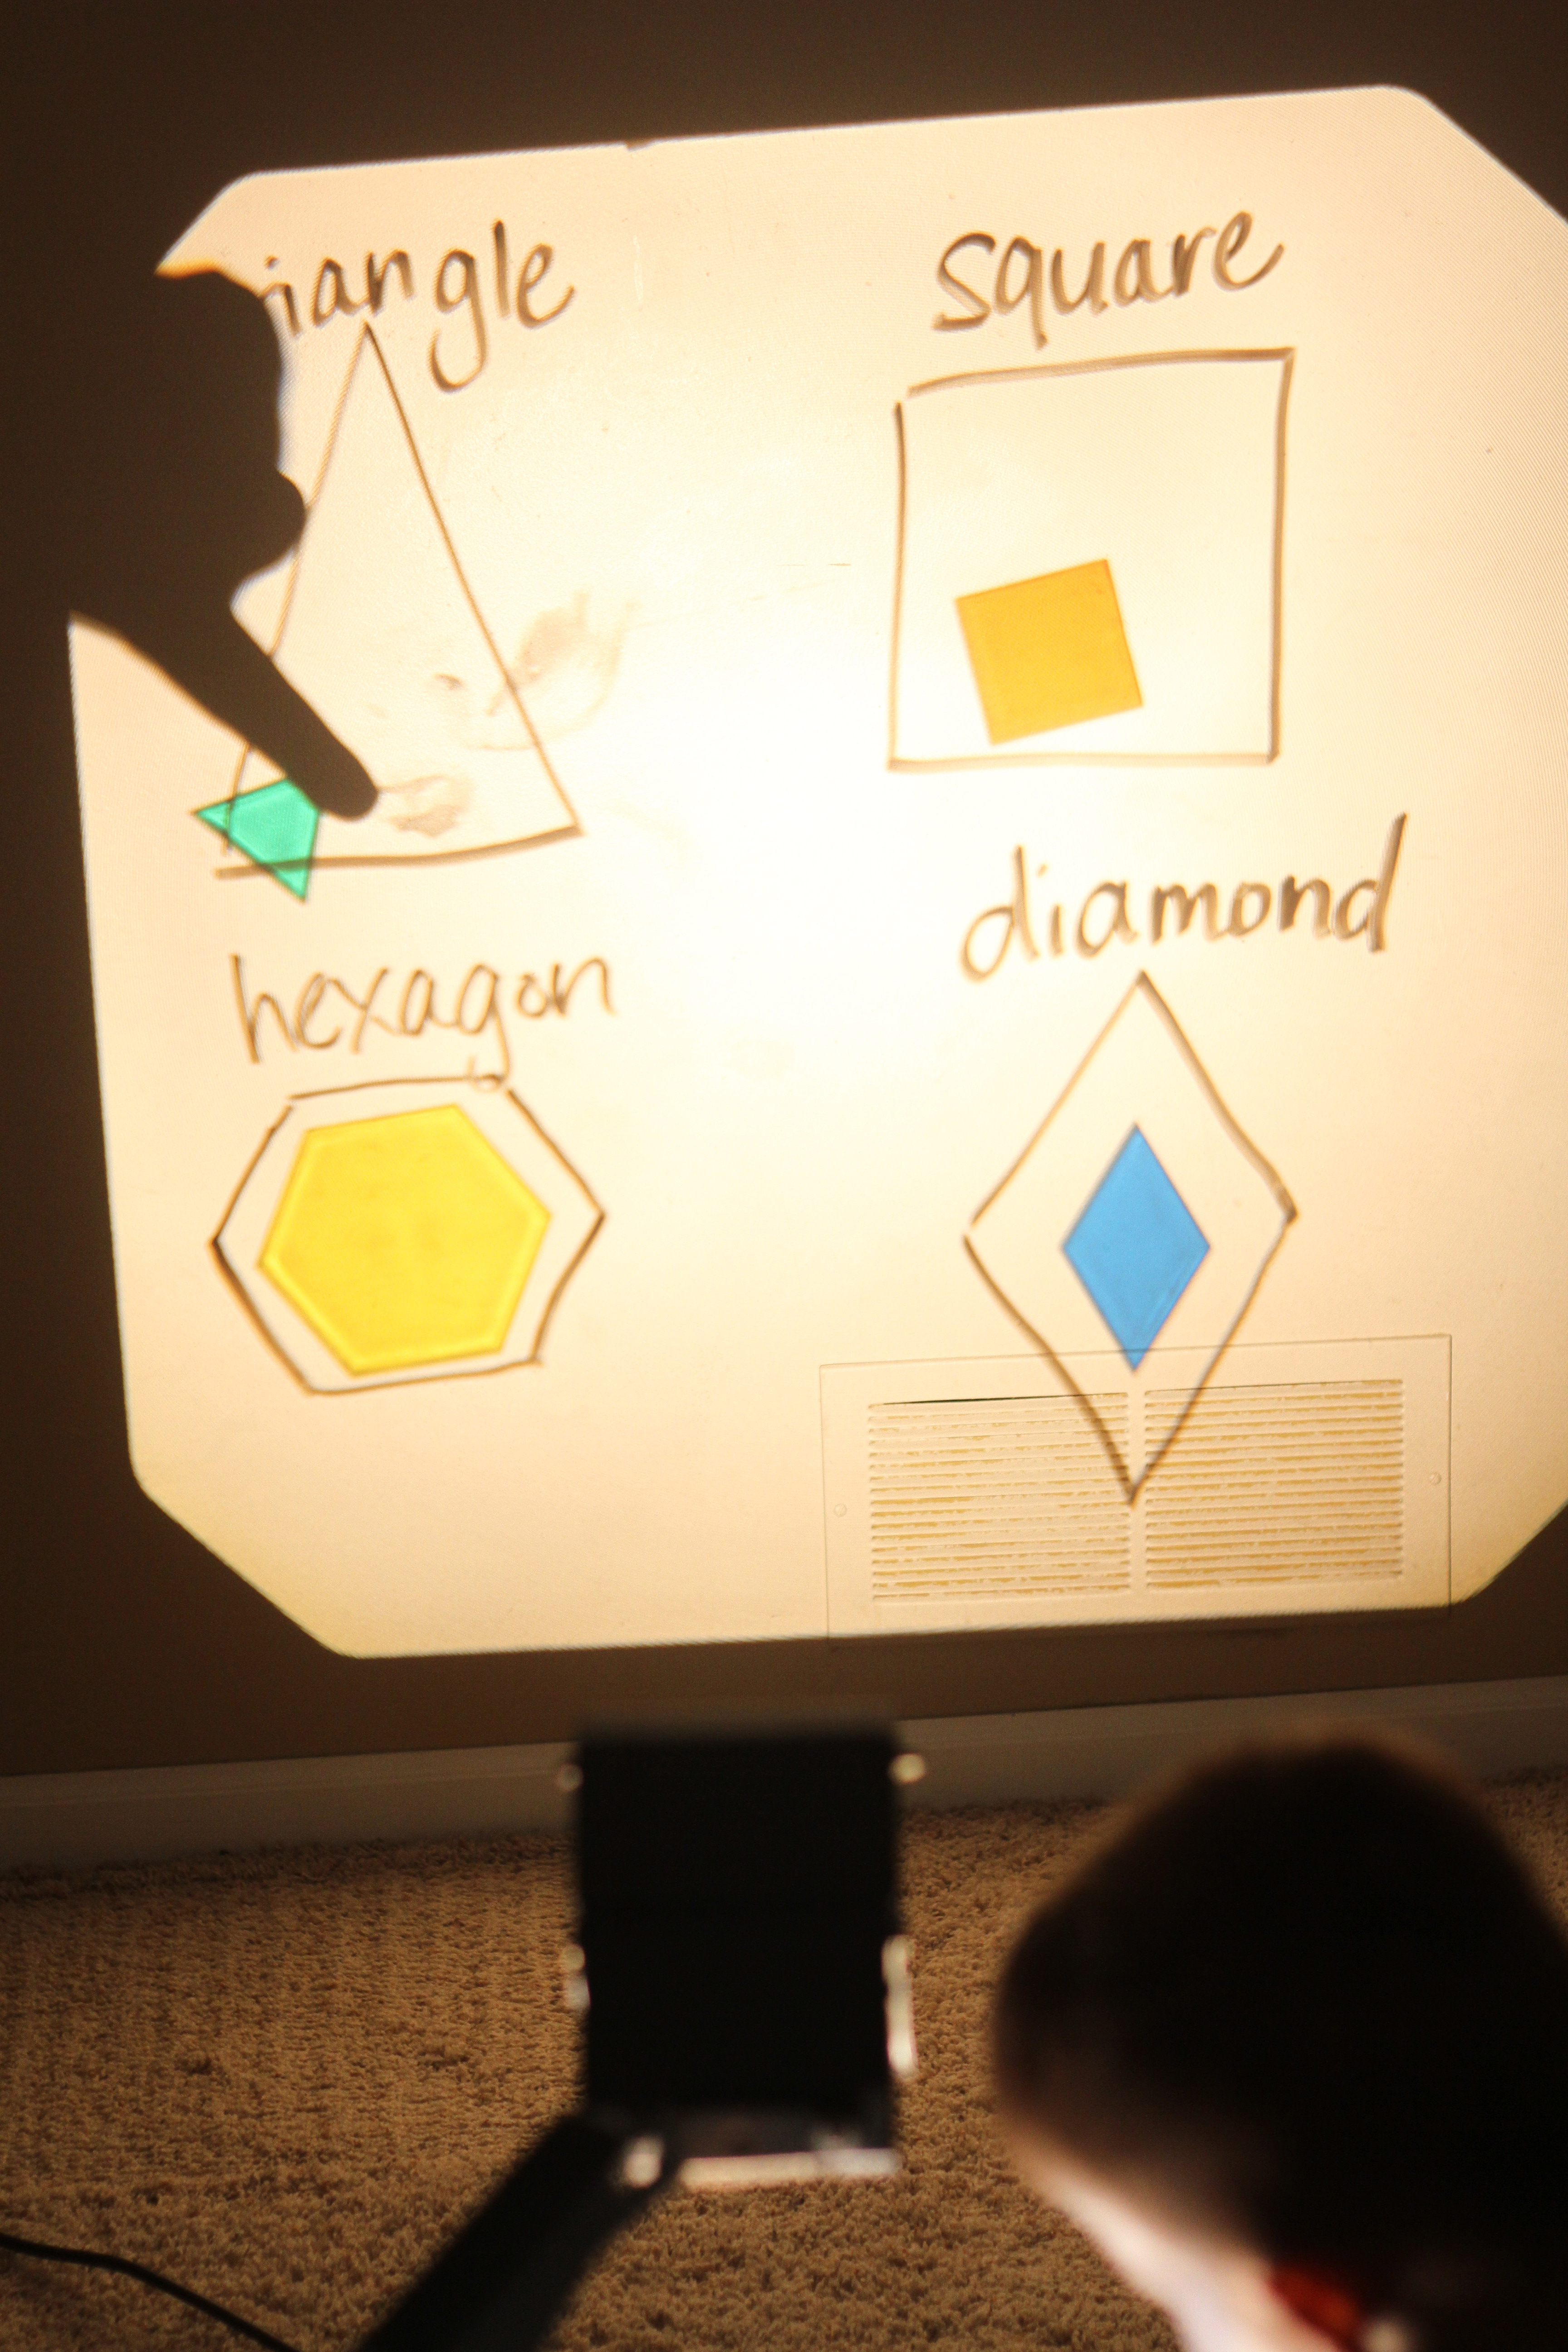 Overhead Projector Learning - I Can Teach My Child!